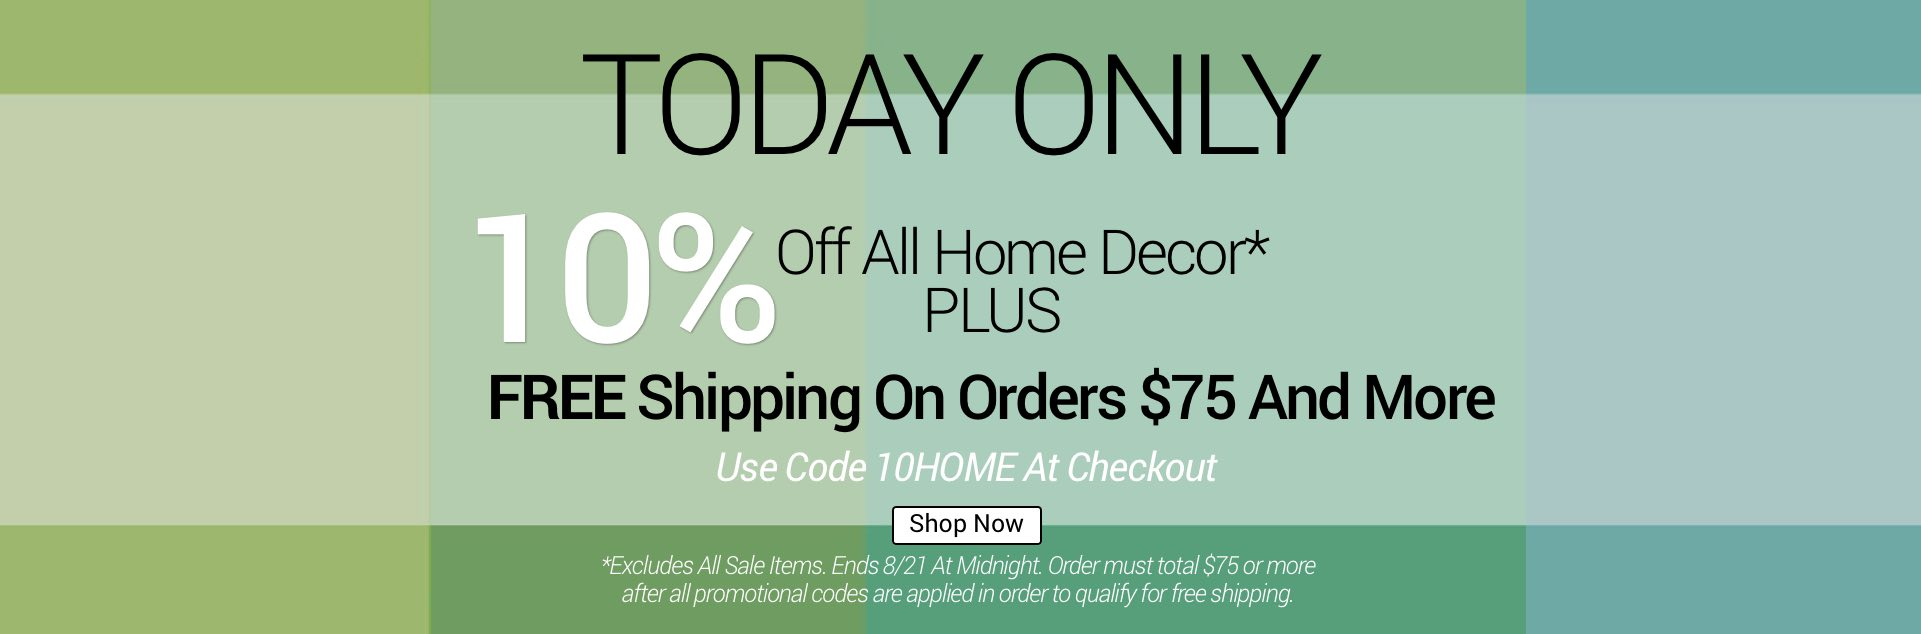 Today Only 10% Off All Home Decor Plus Free Shipping on $75+ Shop Now